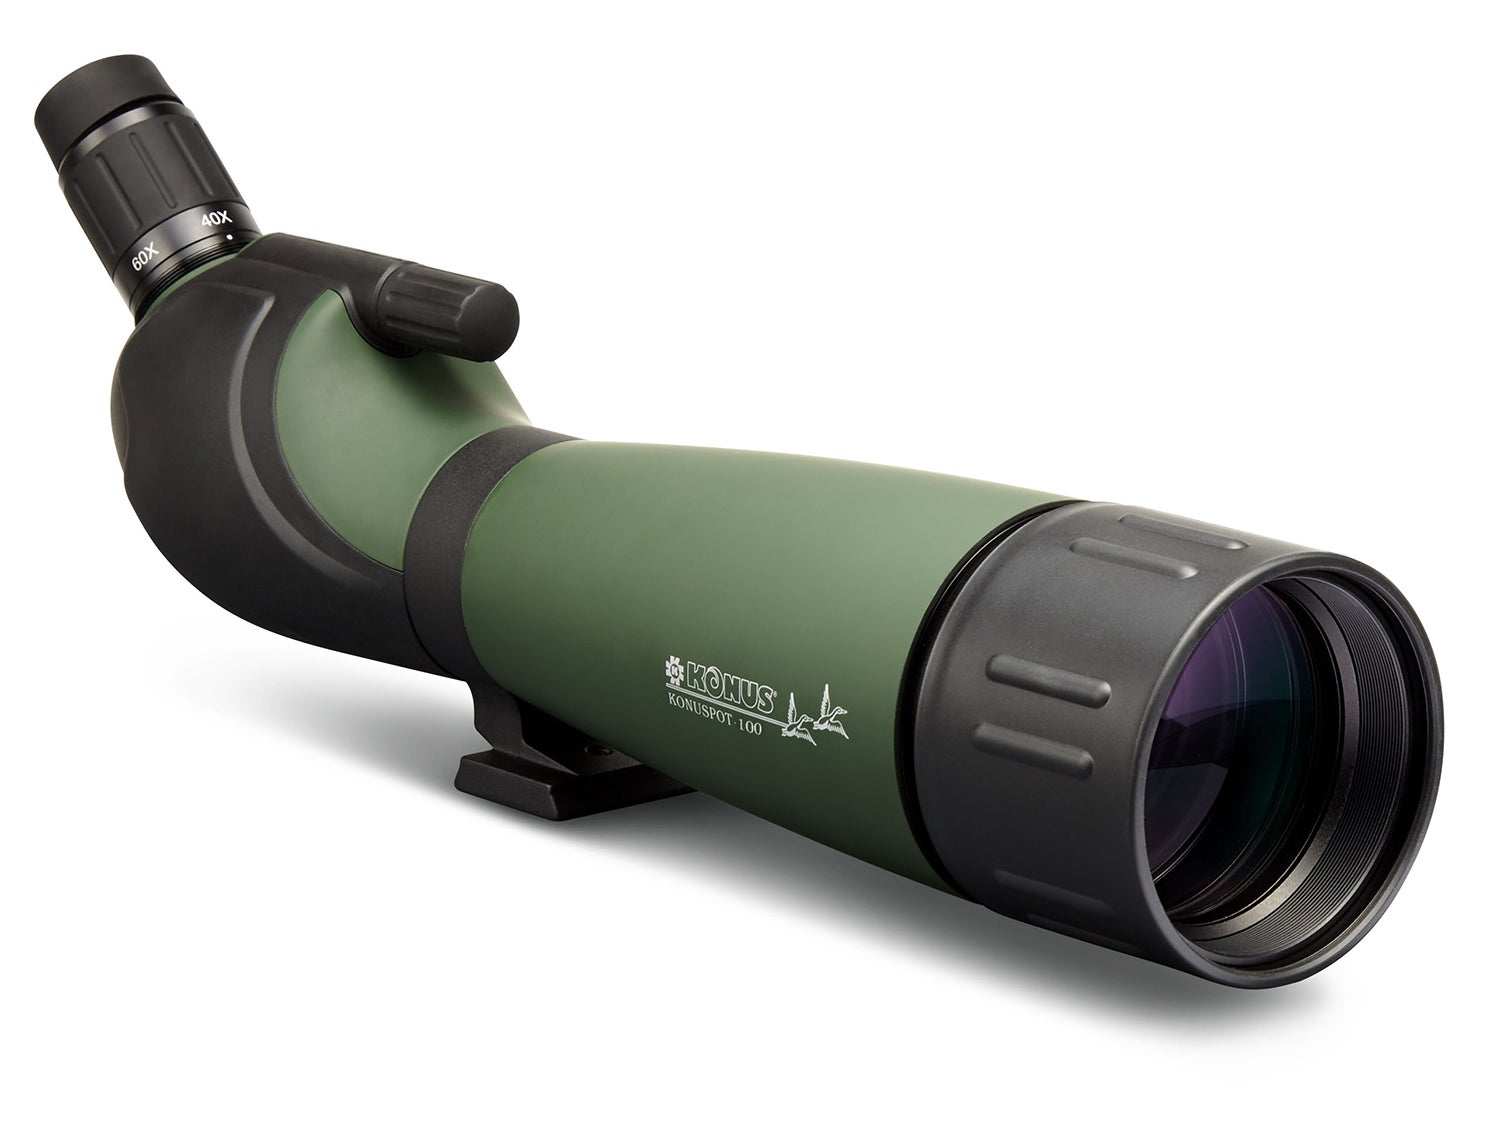 A green and black spotting scope on a white background.